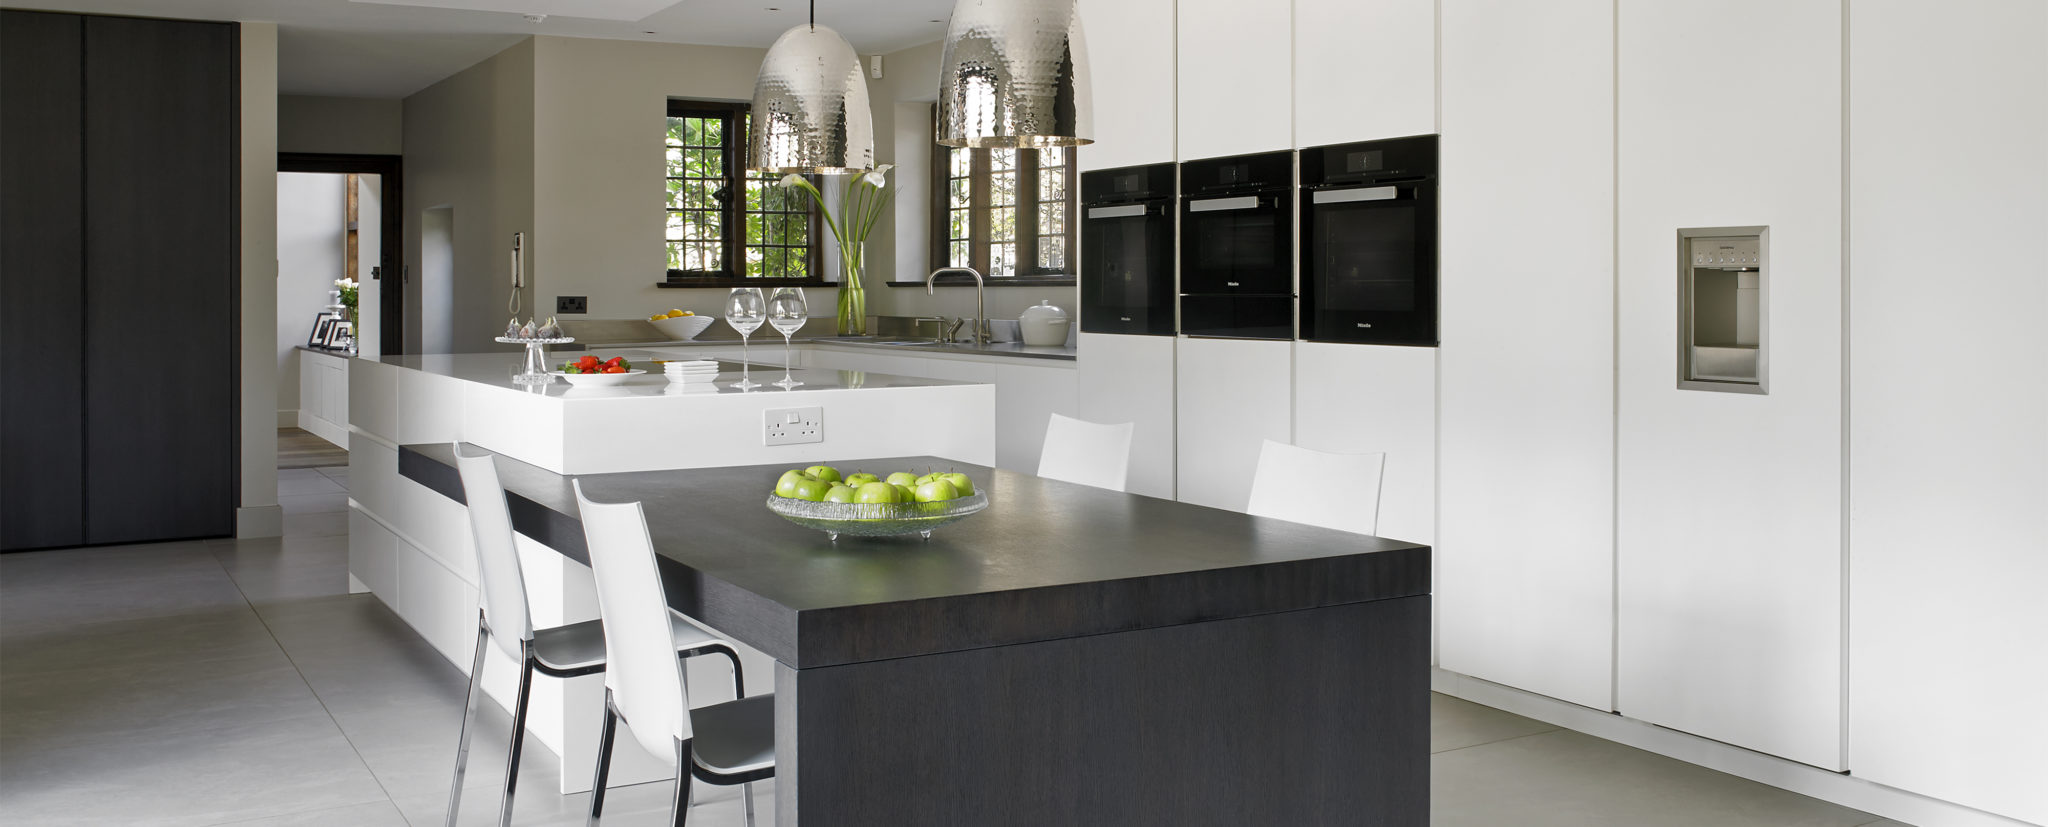 White modern kitchen design featuring island with attached dining table